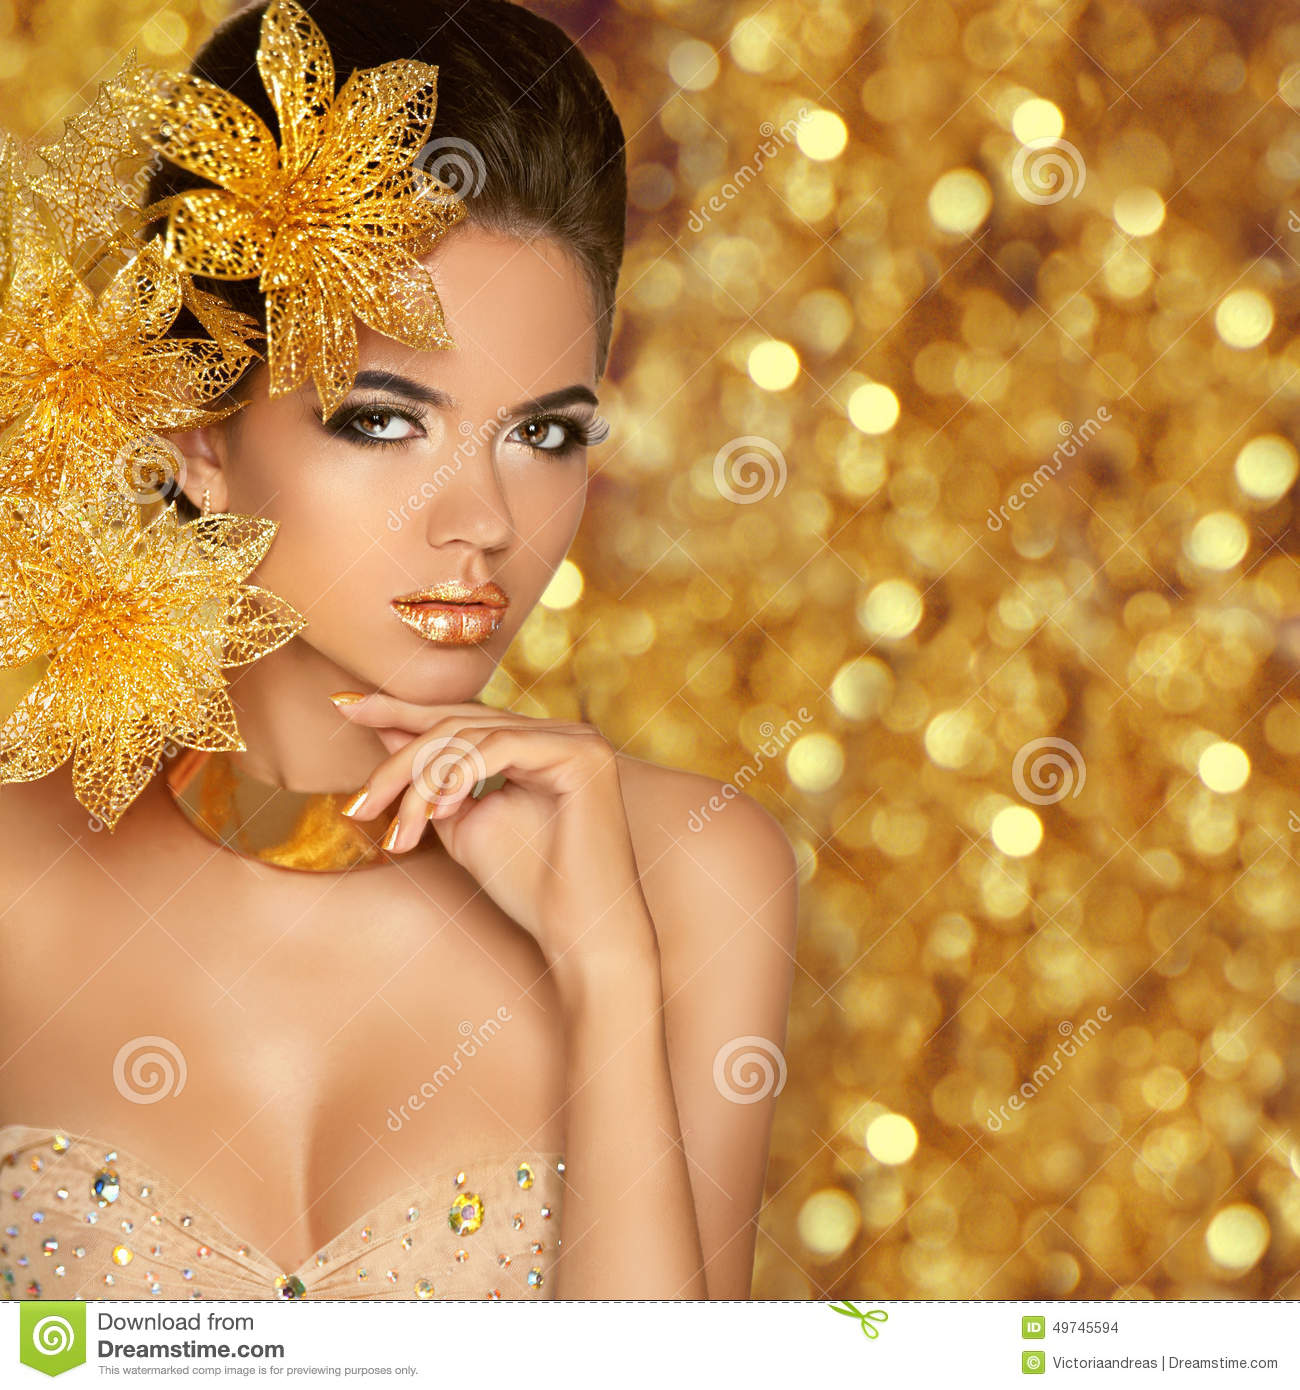 Glam Fall Background Wallpaper Fashion Beauty Girl Portrait Isolated On Golden Christmas